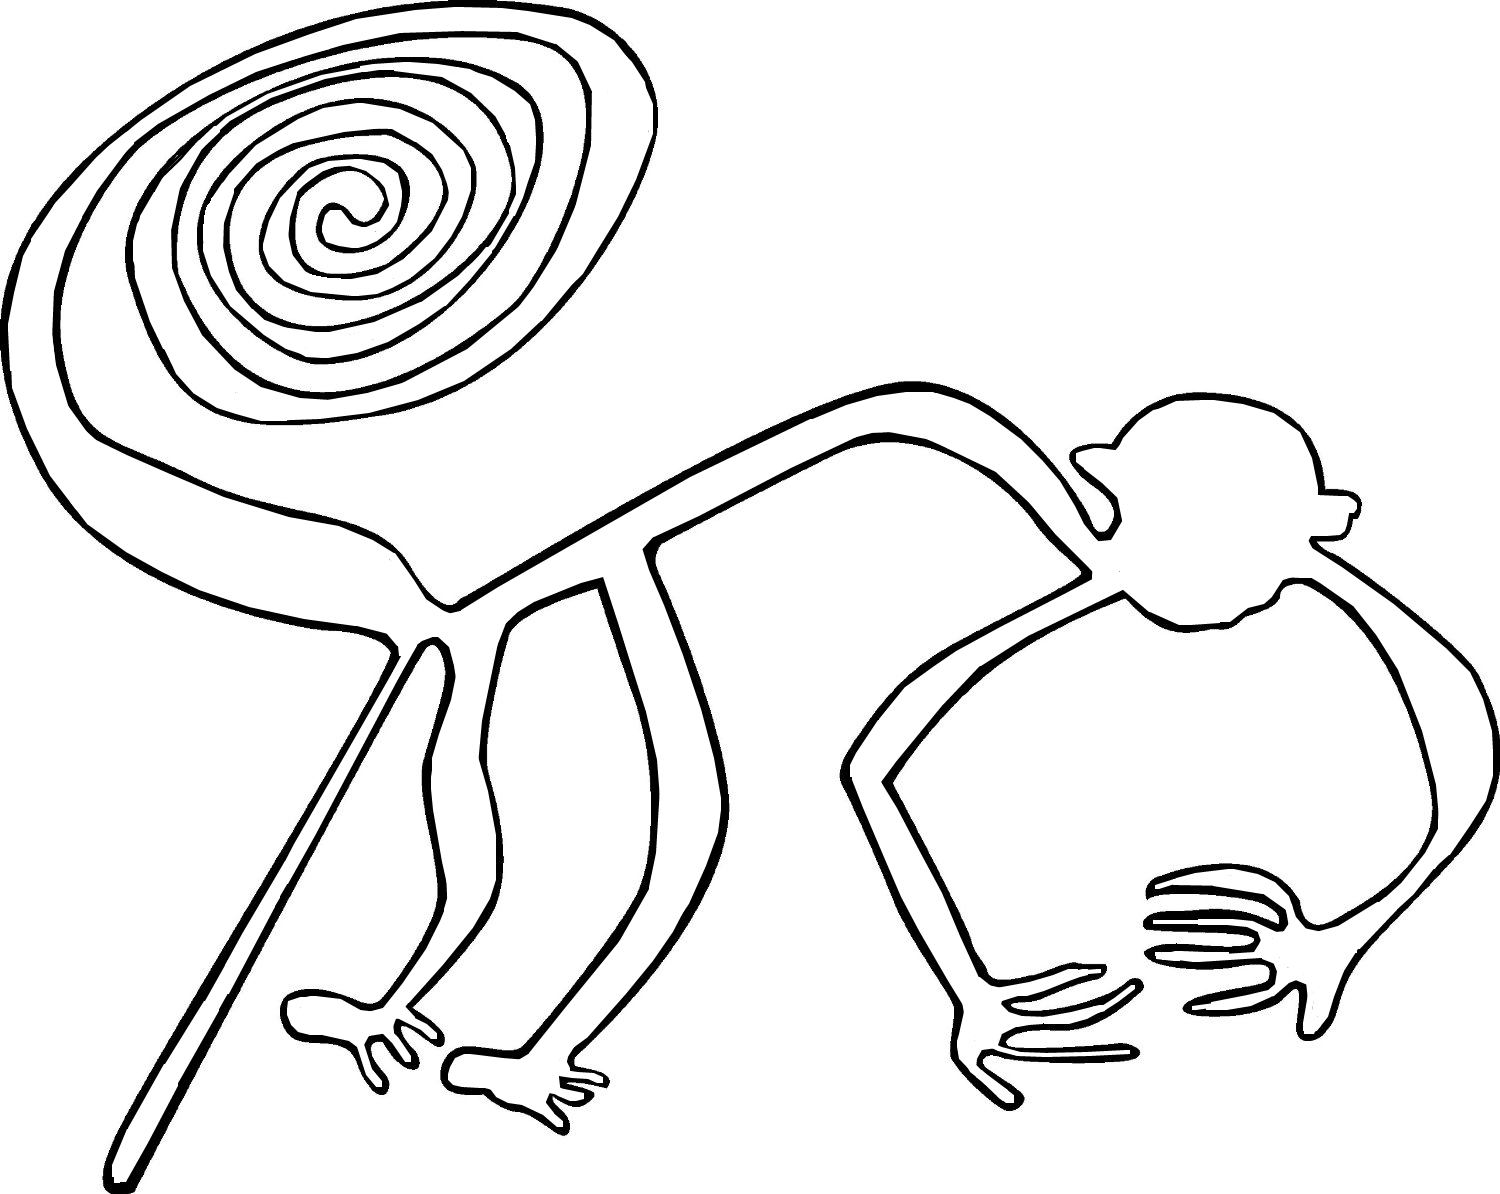 Line Drawing Lessons : Art lesson nazca plateau contour line drawing